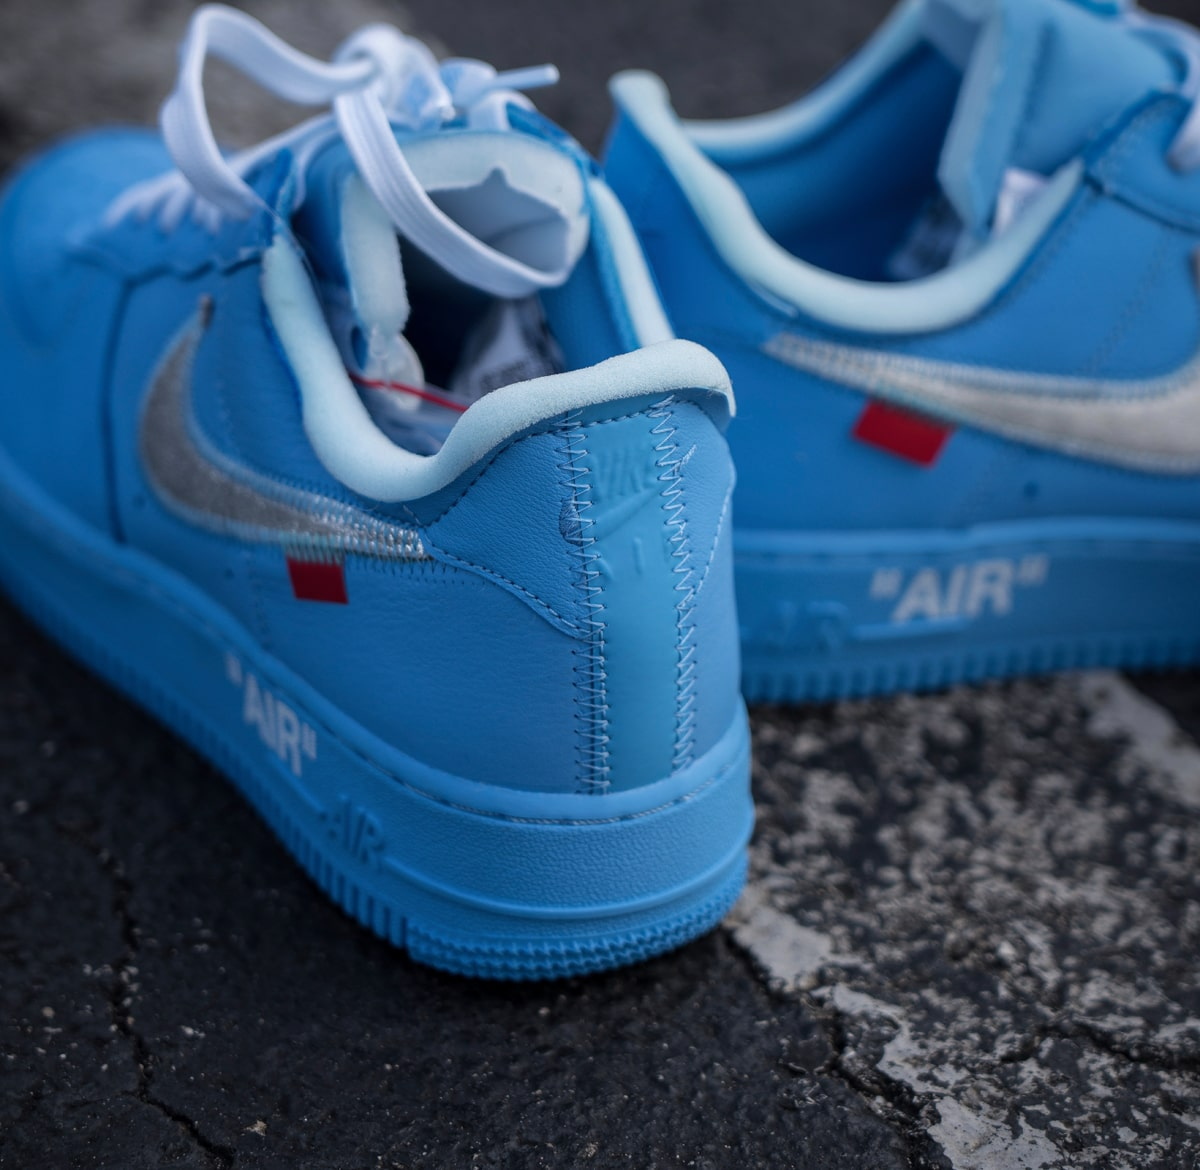 buy popular d5b33 d531c How to Buy the Blue OFF-WHITE x Nike Air Force 1